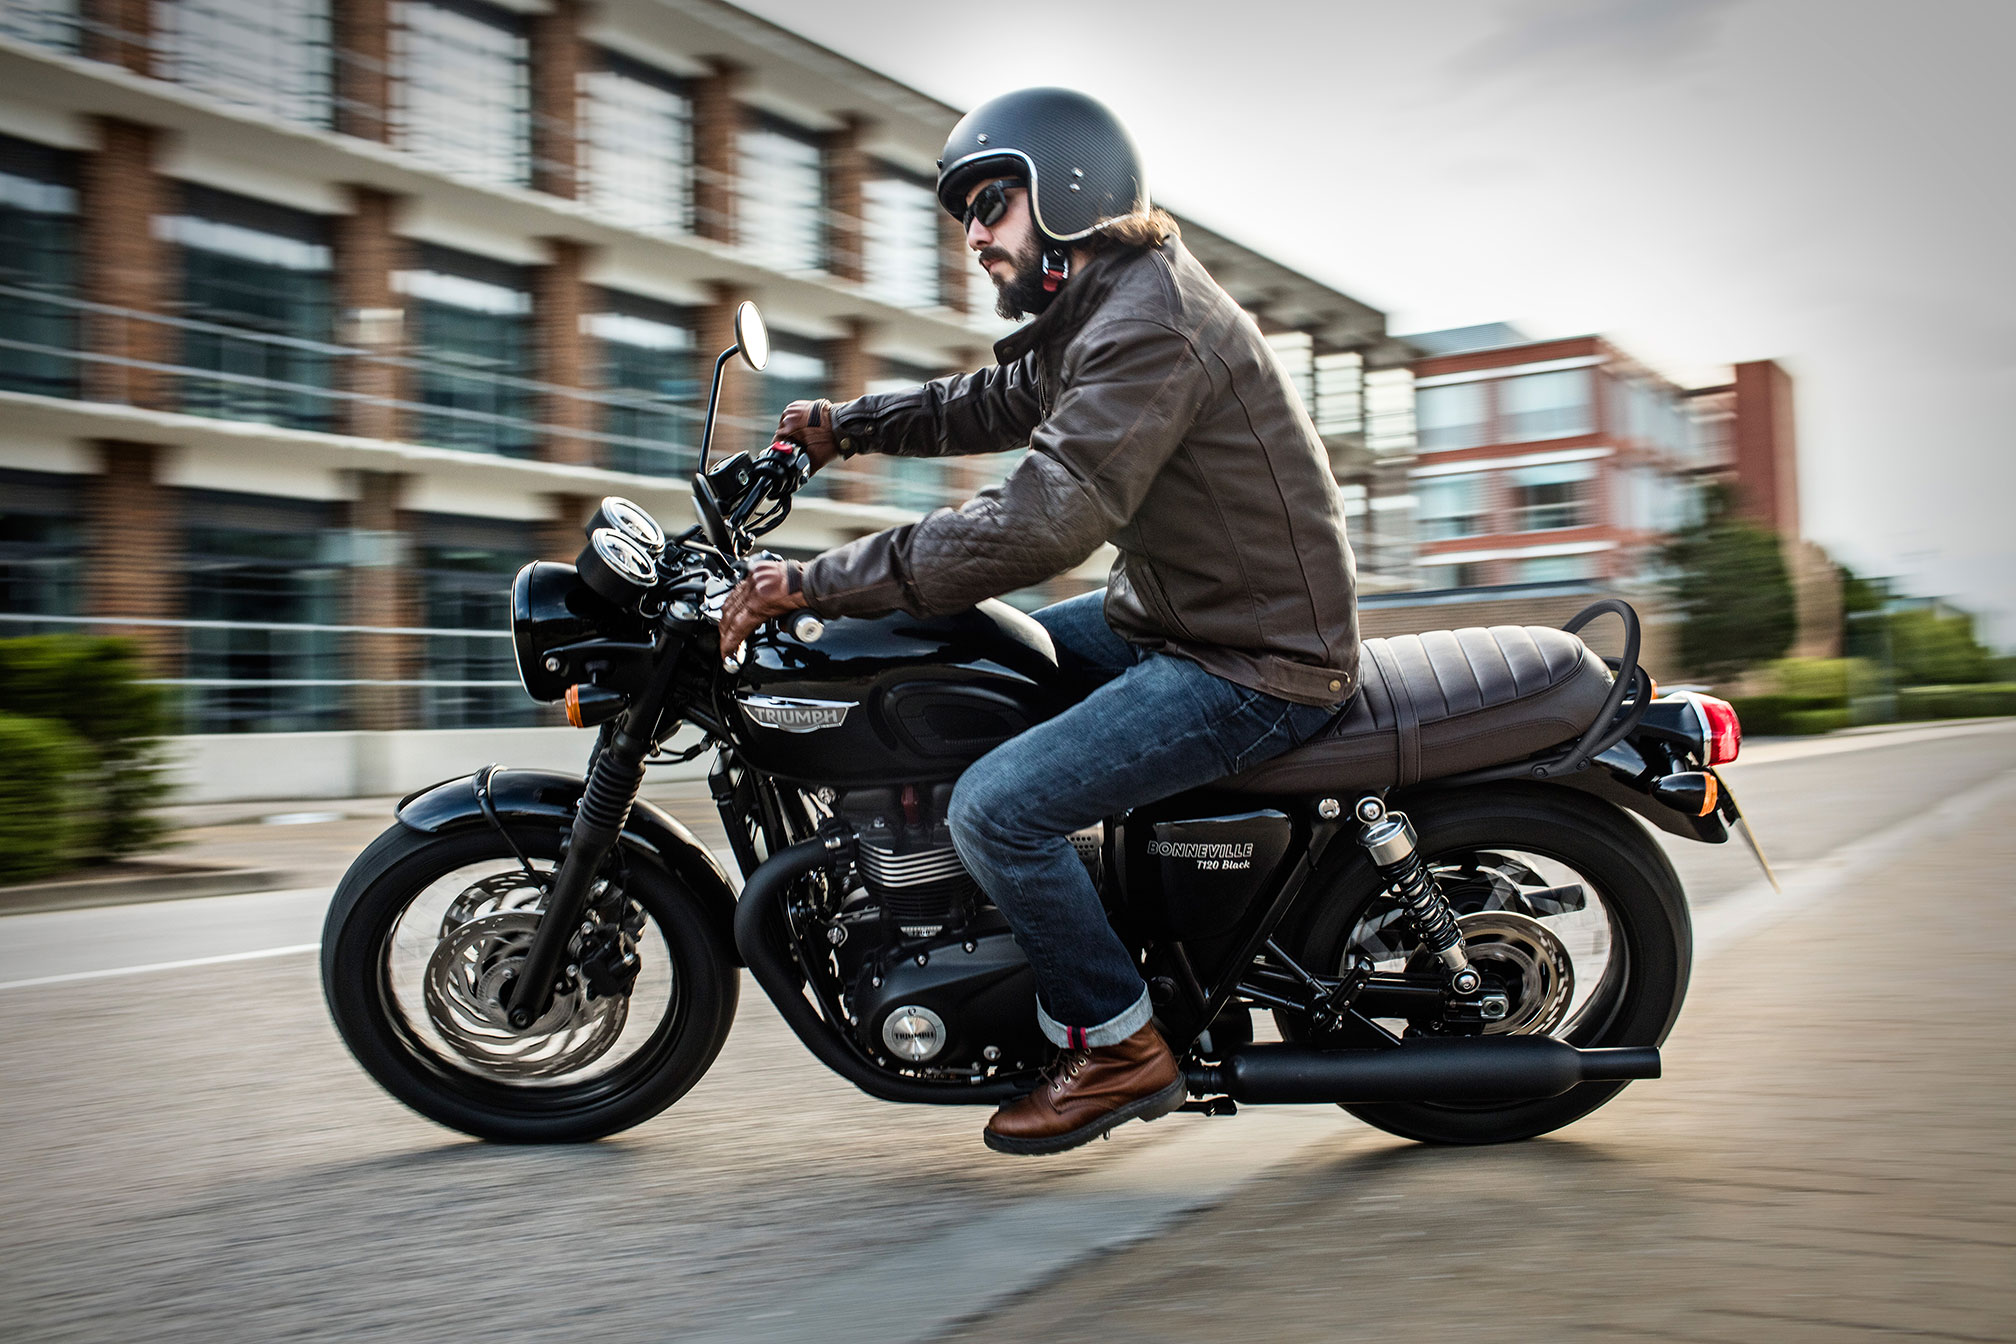 We List Down 10 Of The Best Triumph Motorcycles